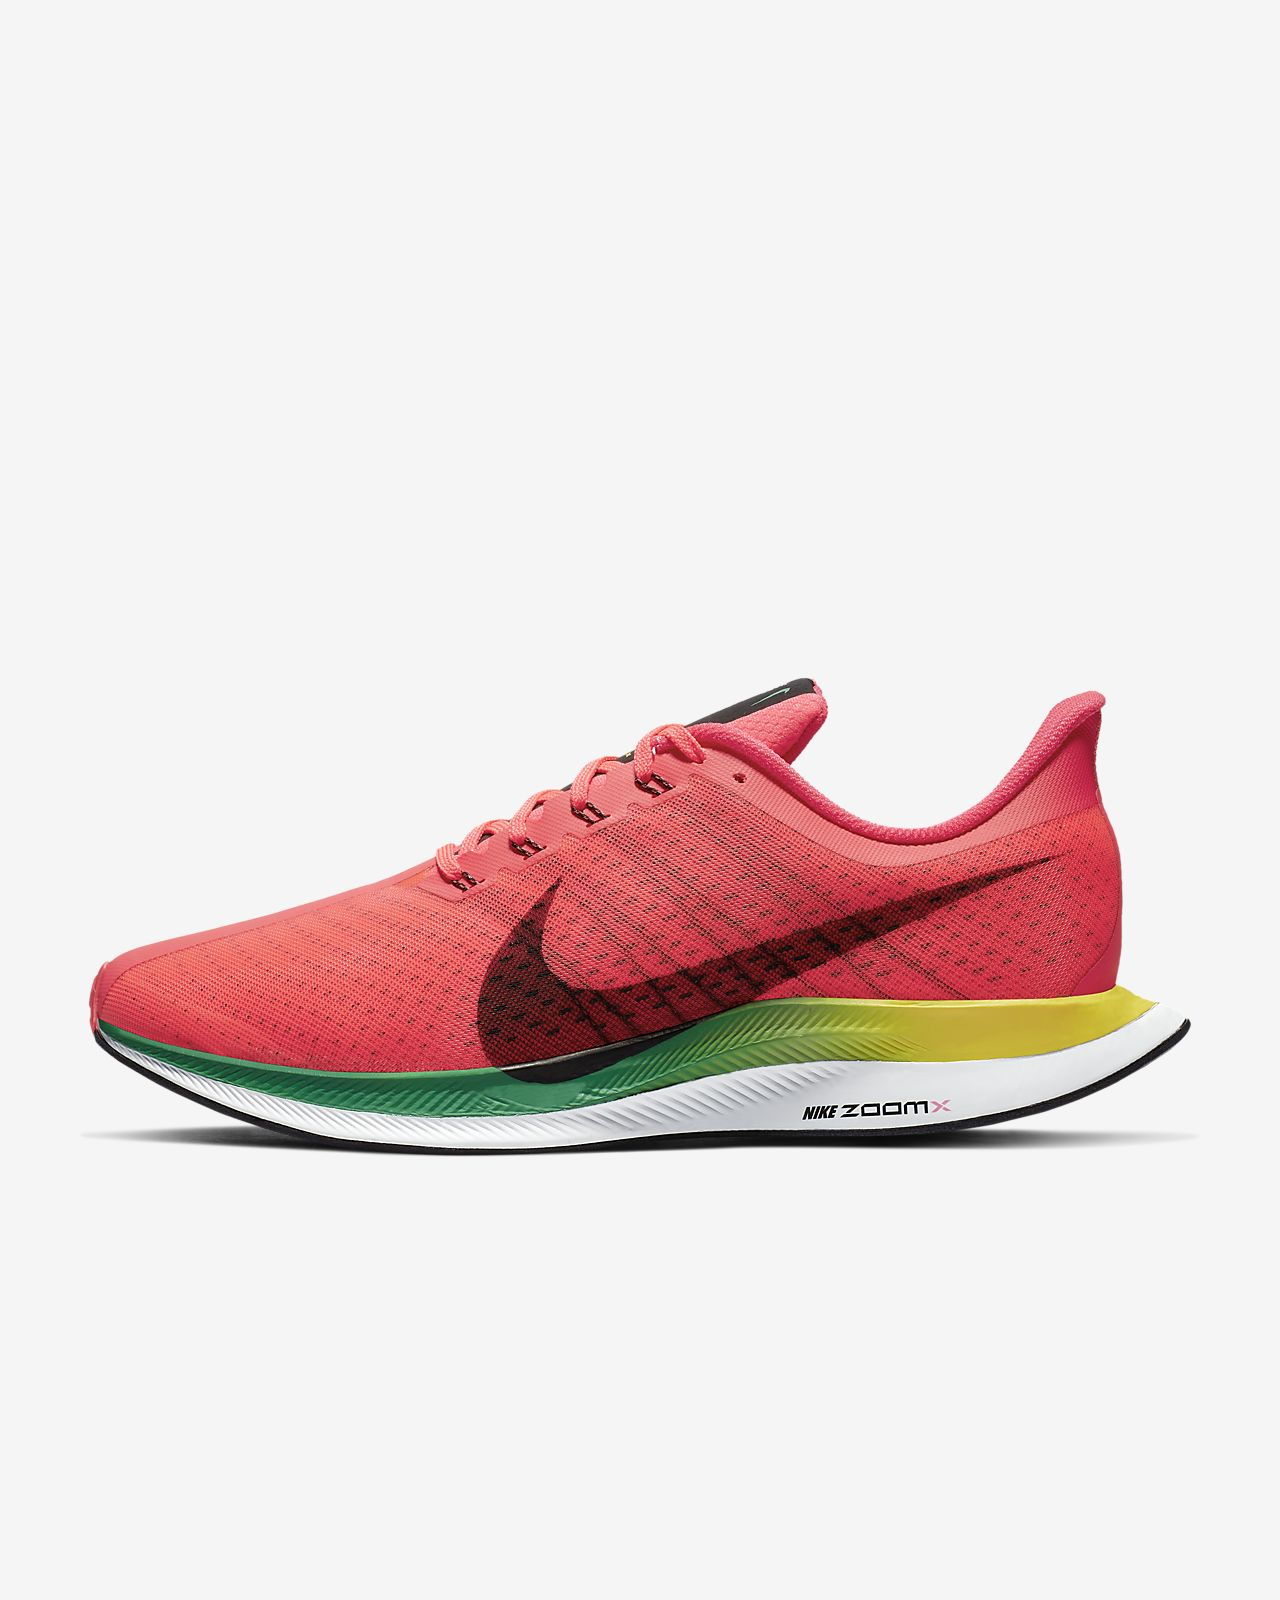 7f4135f981186d Nike Zoom Pegasus Turbo Men s Running Shoe. Nike.com